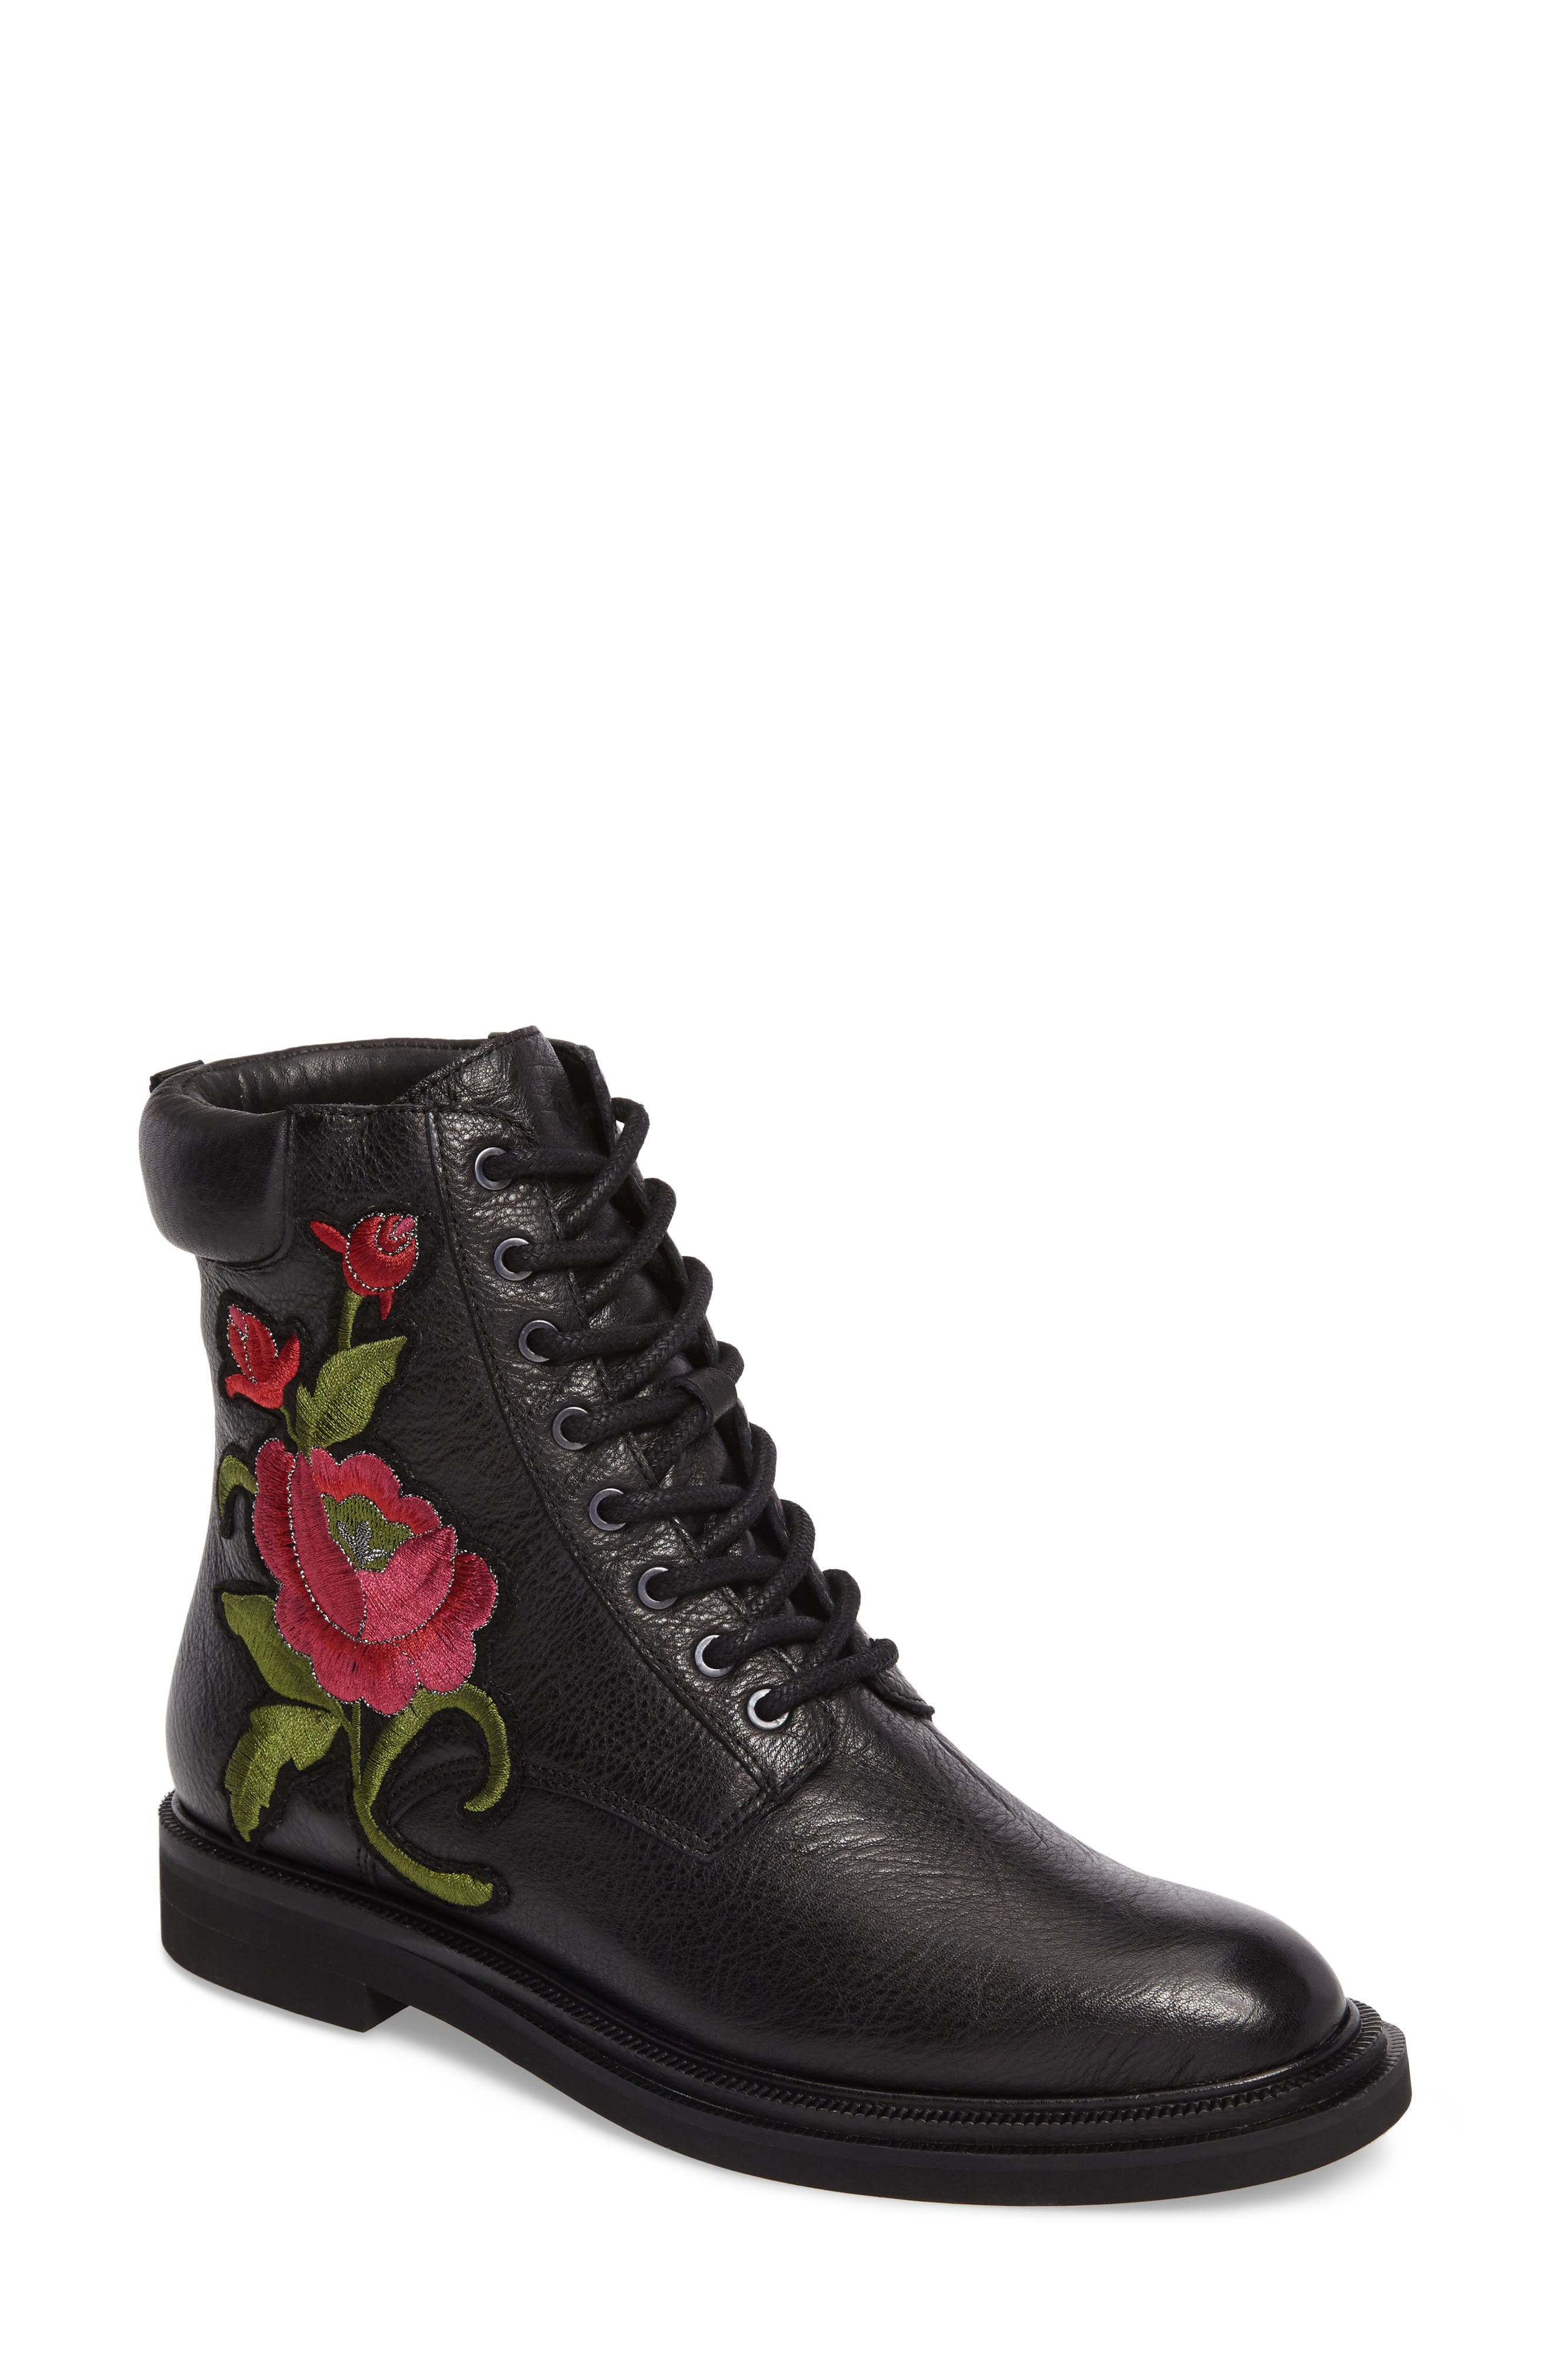 Main Image - Kenneth Cole New York Ashton 2 Embroidered Boot (Women)